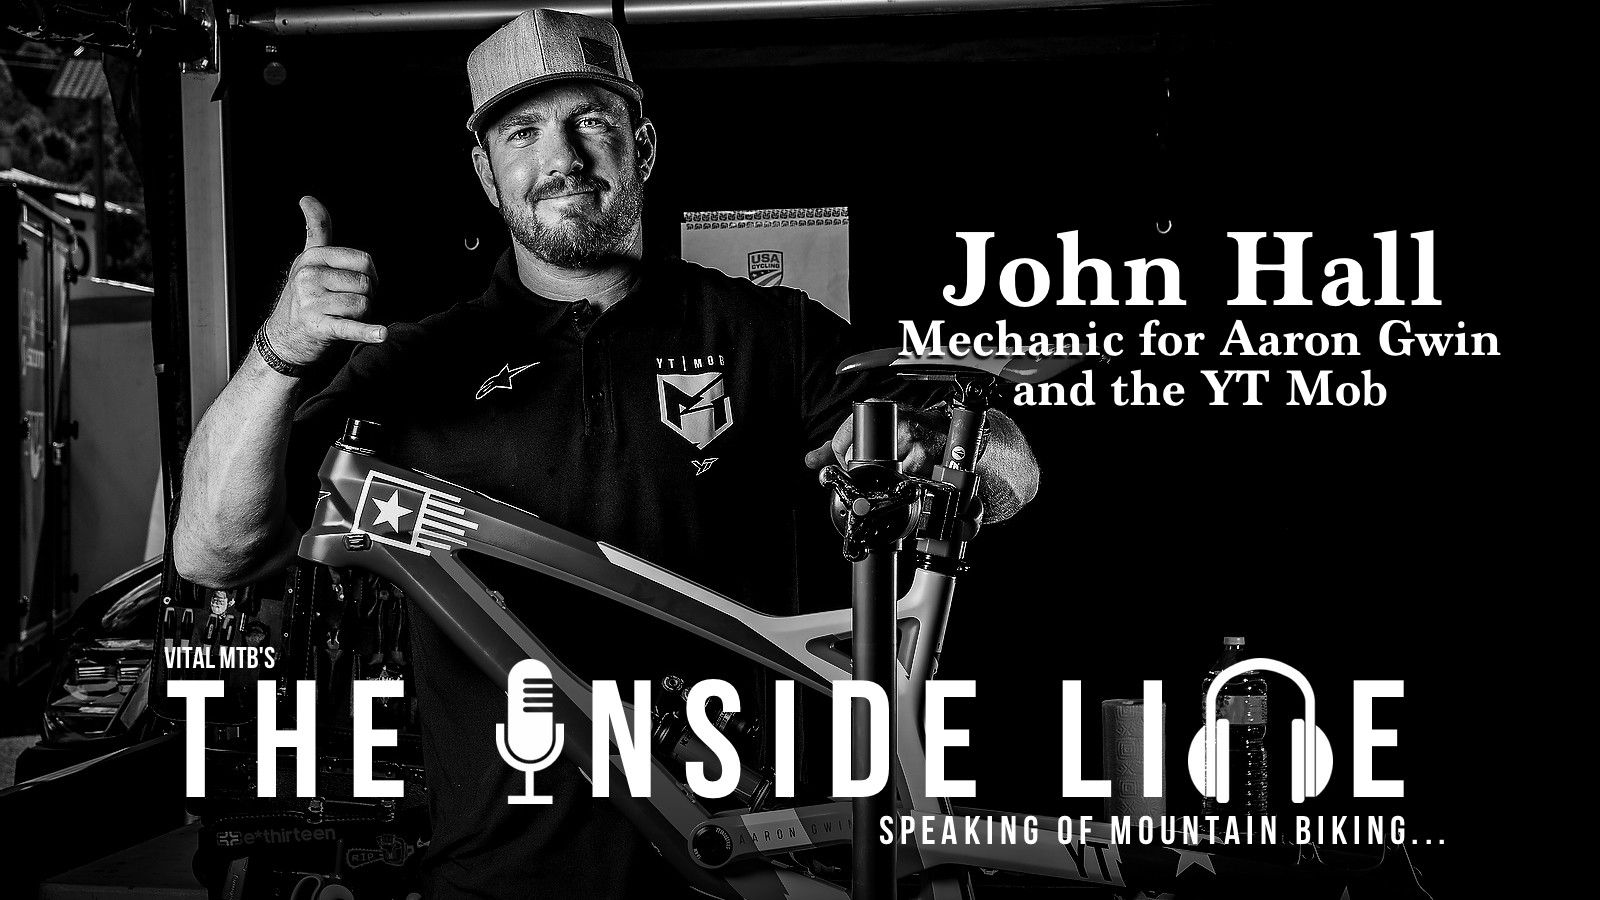 The Inside Line Podcast - John Hall, Aaron Gwin's Mechanic